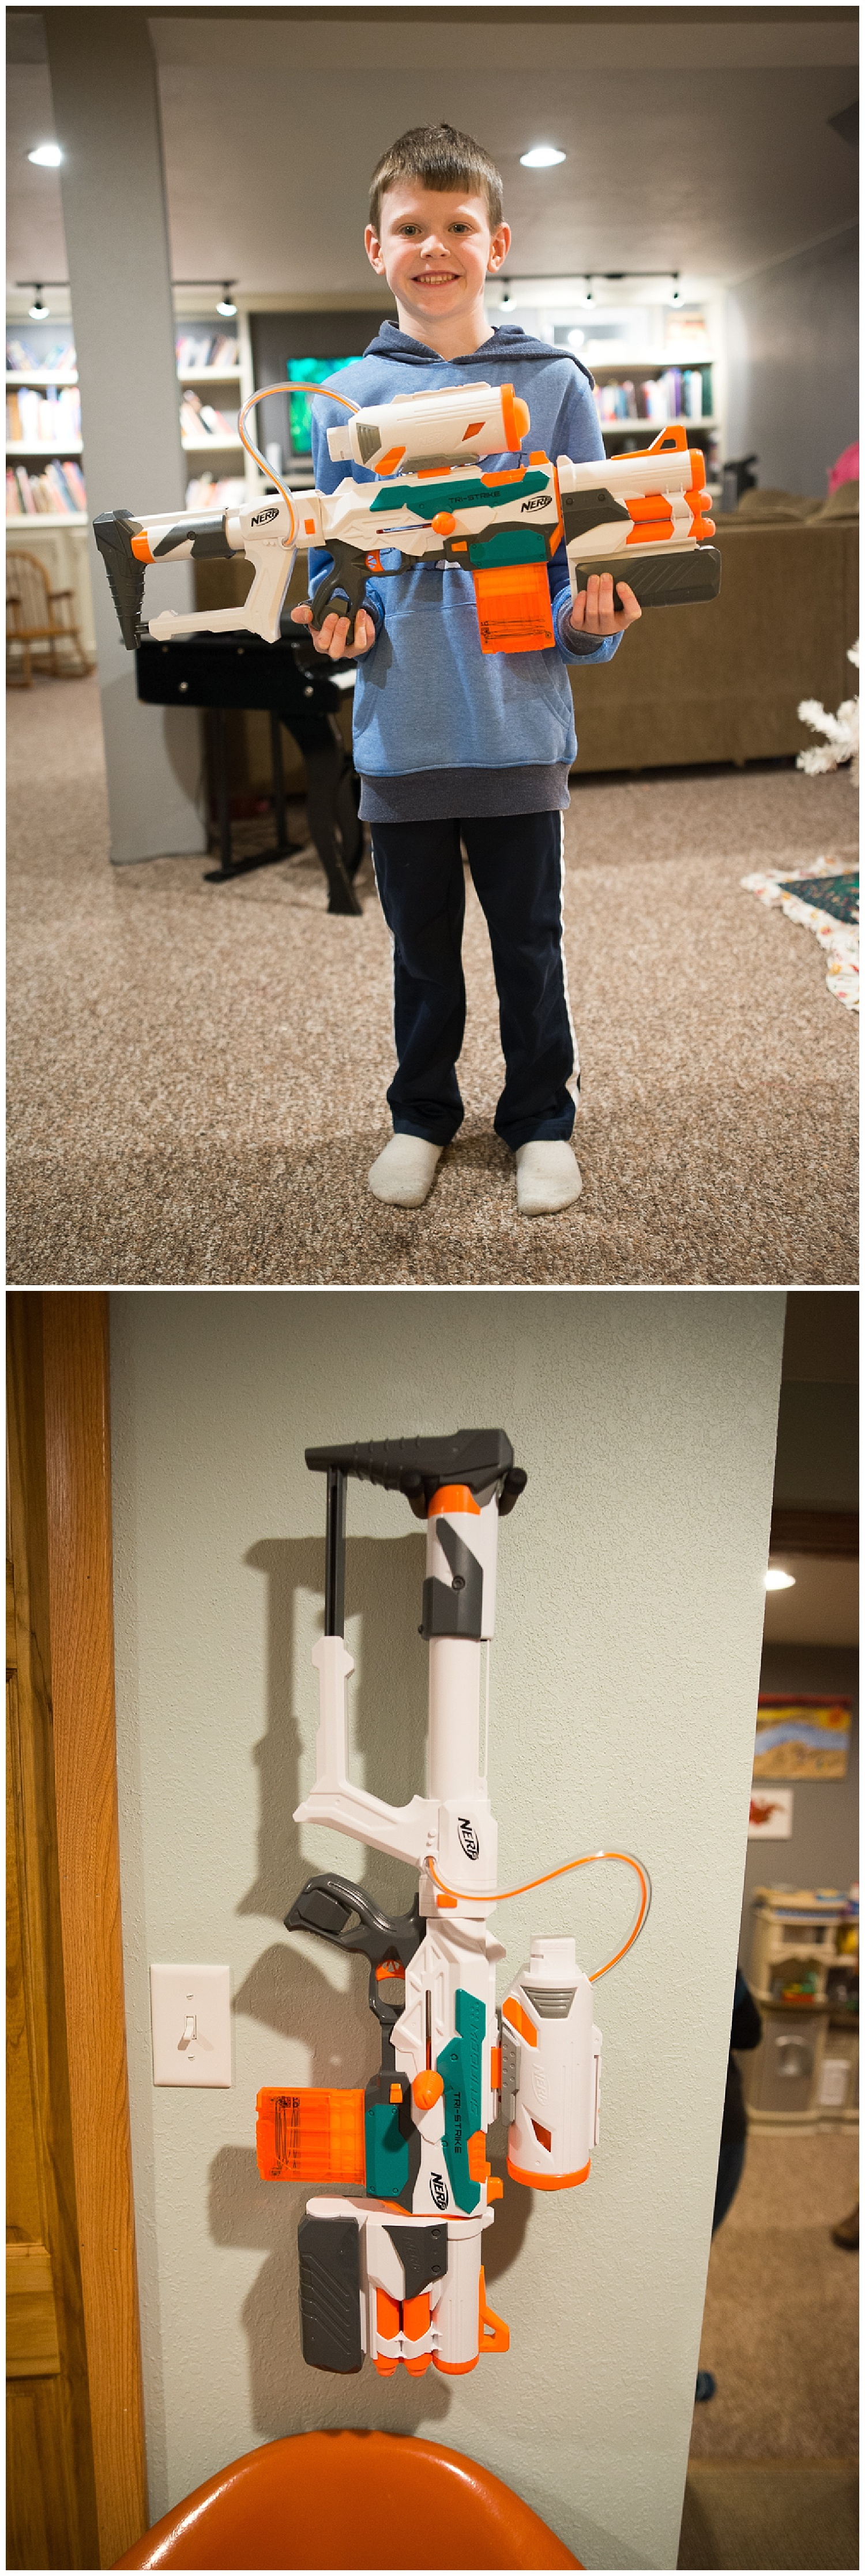 And Eli's favorite thing is his Nerf gun.  It hangs on the wall from a guitar holder.